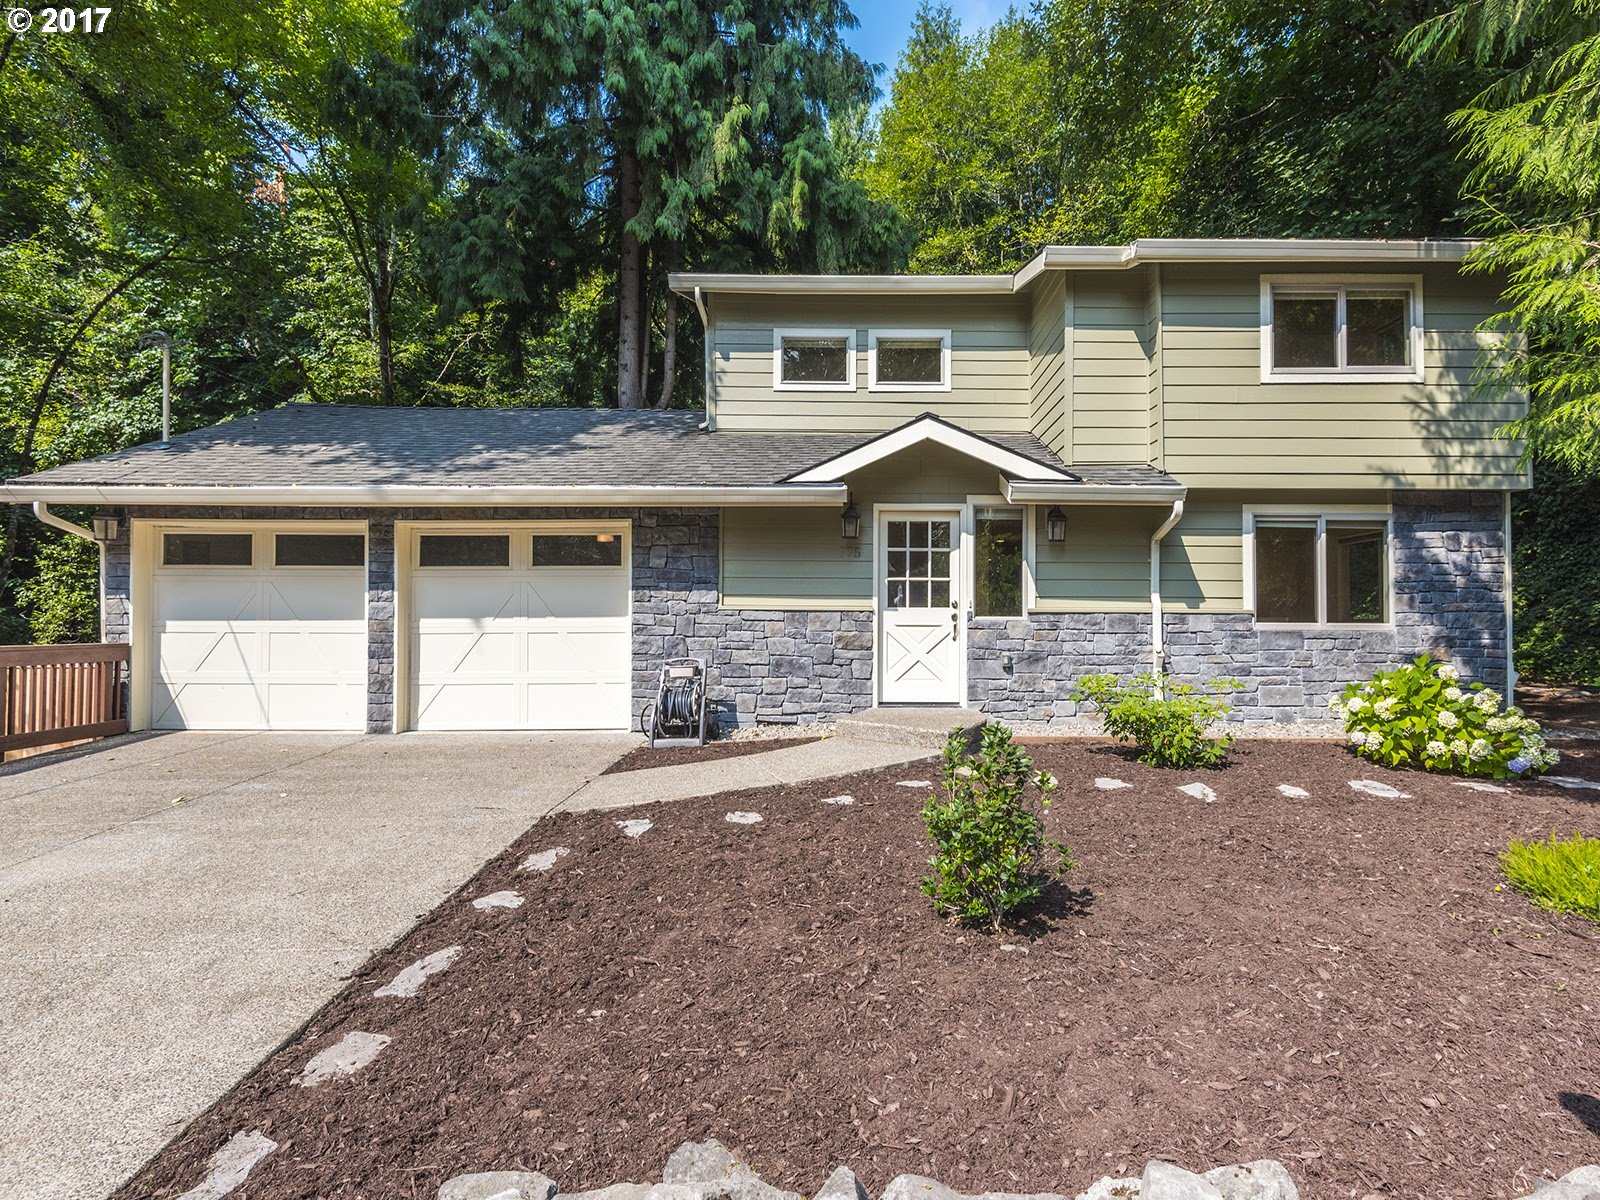 775 BOCA RATAN DR, Lake Oswego, OR 97034